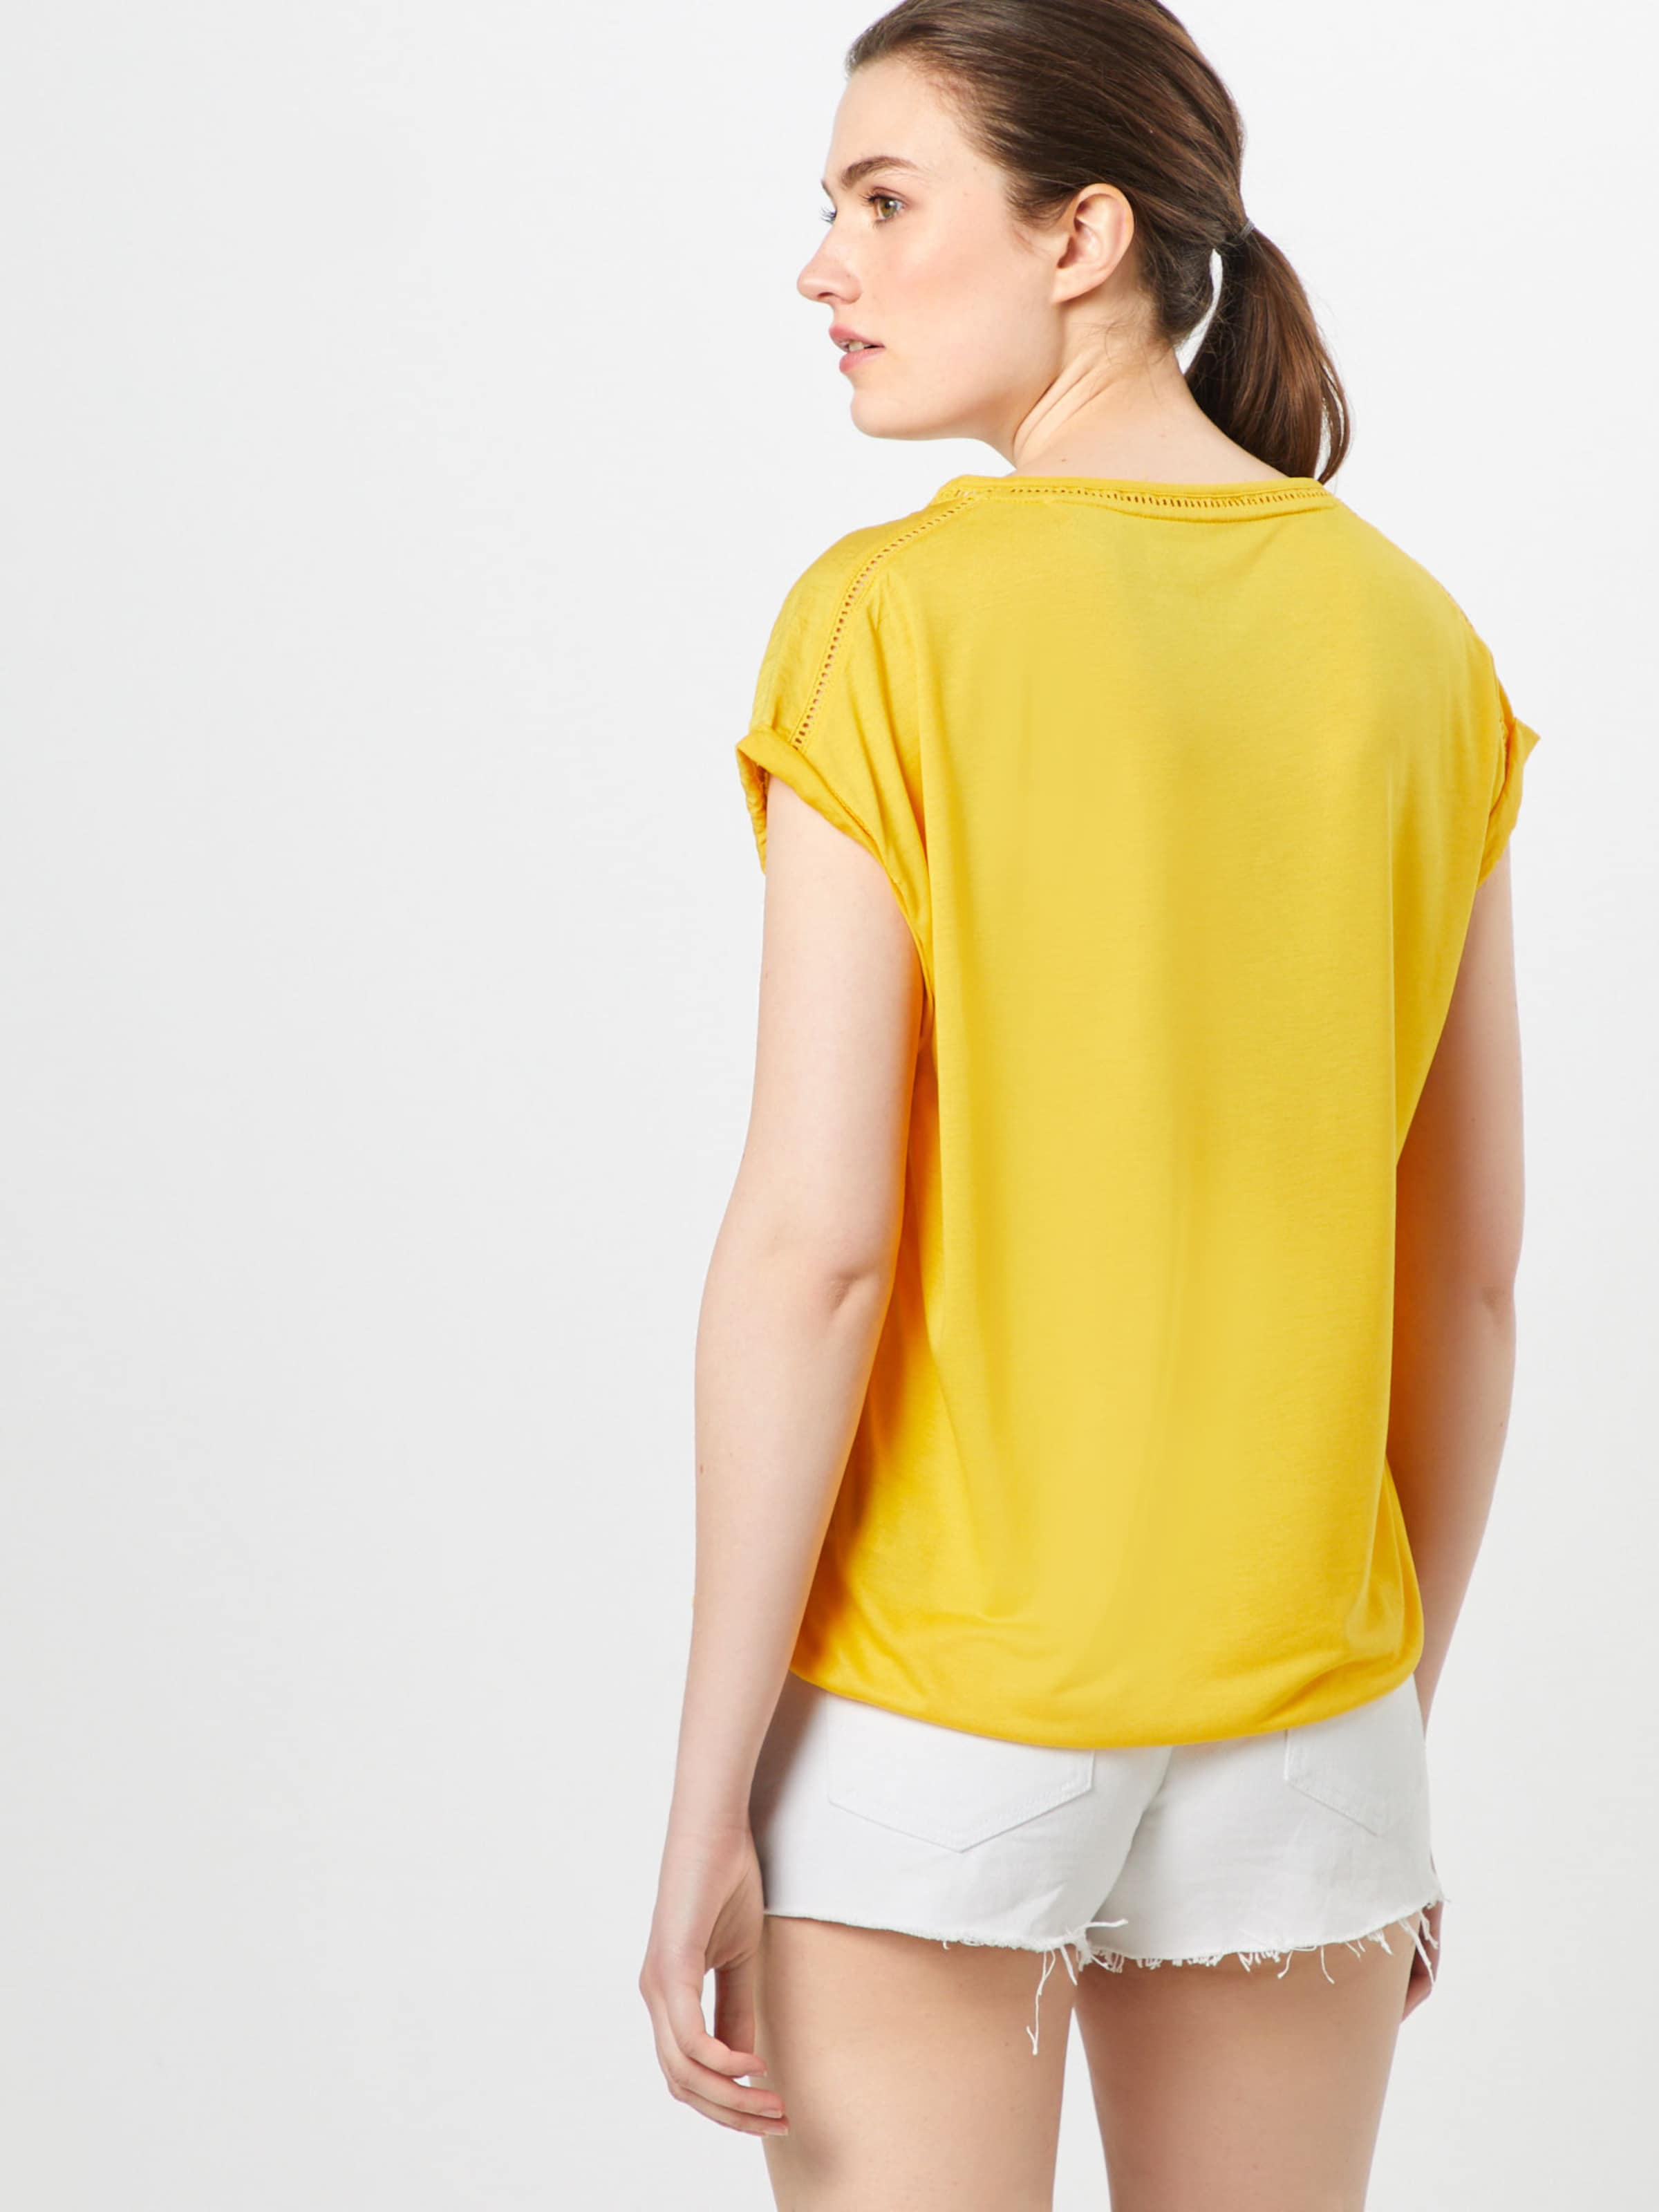 T oliver shirt S En Label Red Jaune c5ASq3j4RL